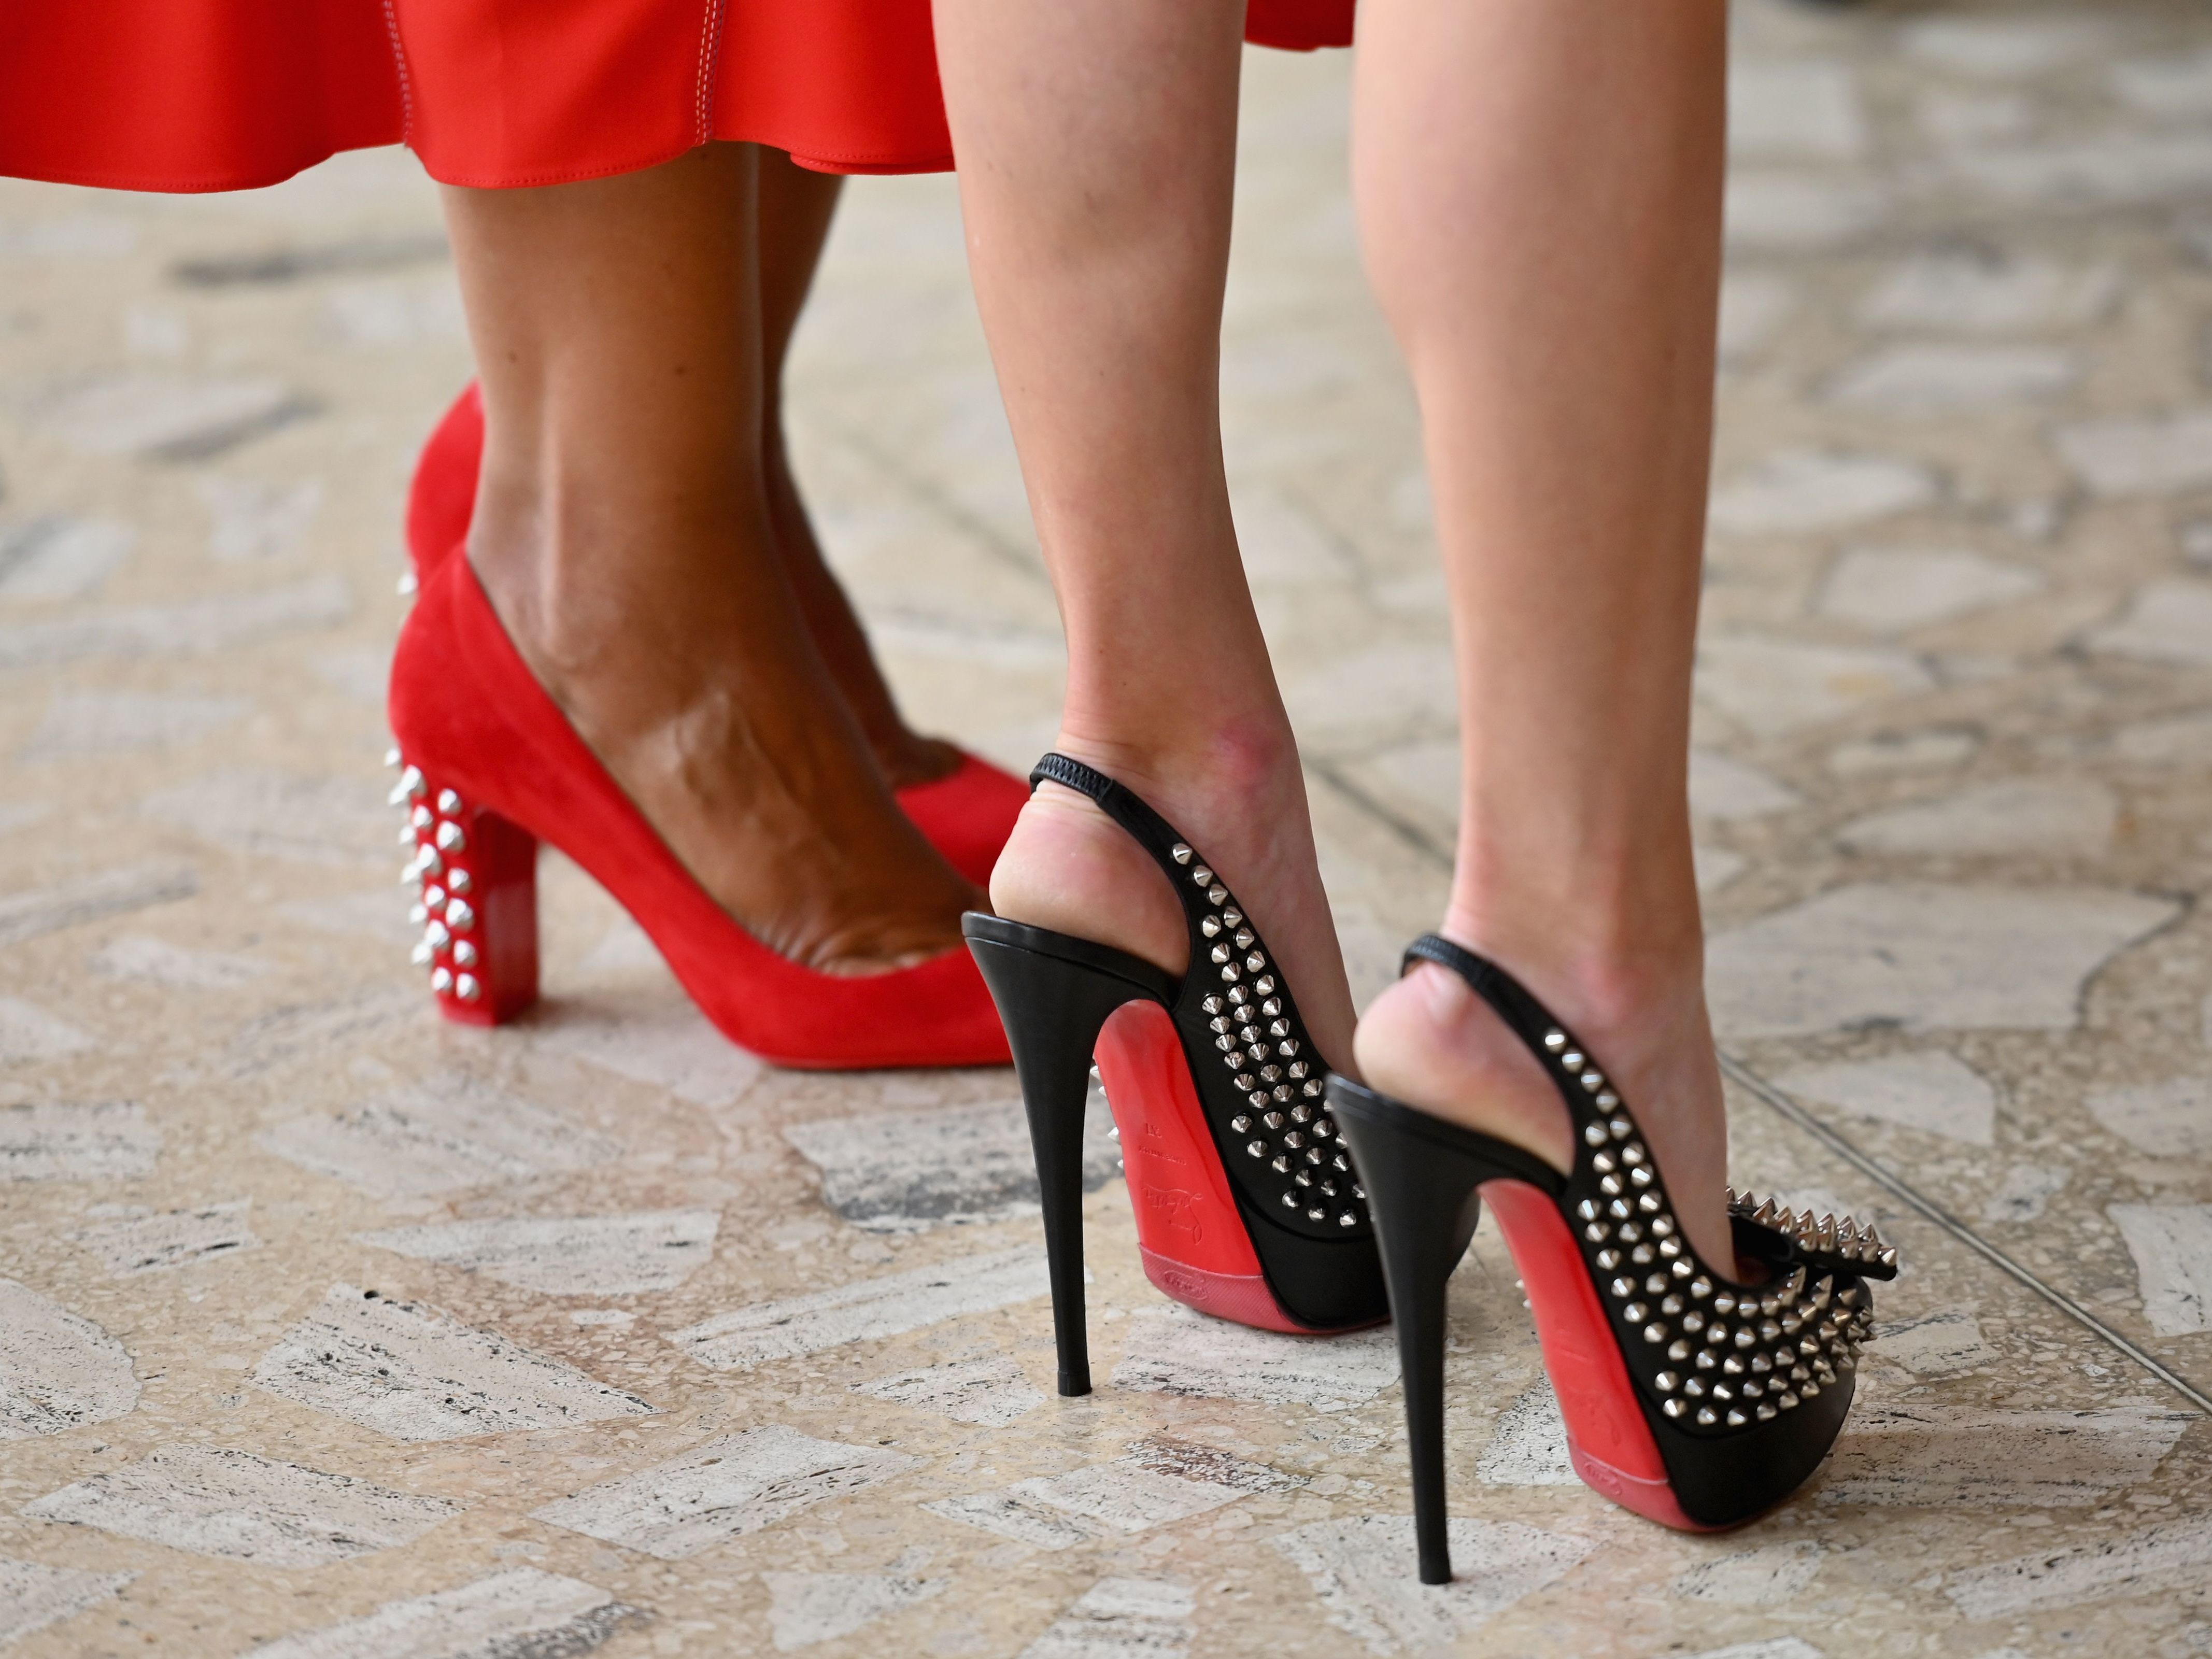 Falling Flat: Are The Days Of High Heels Coming To An End?